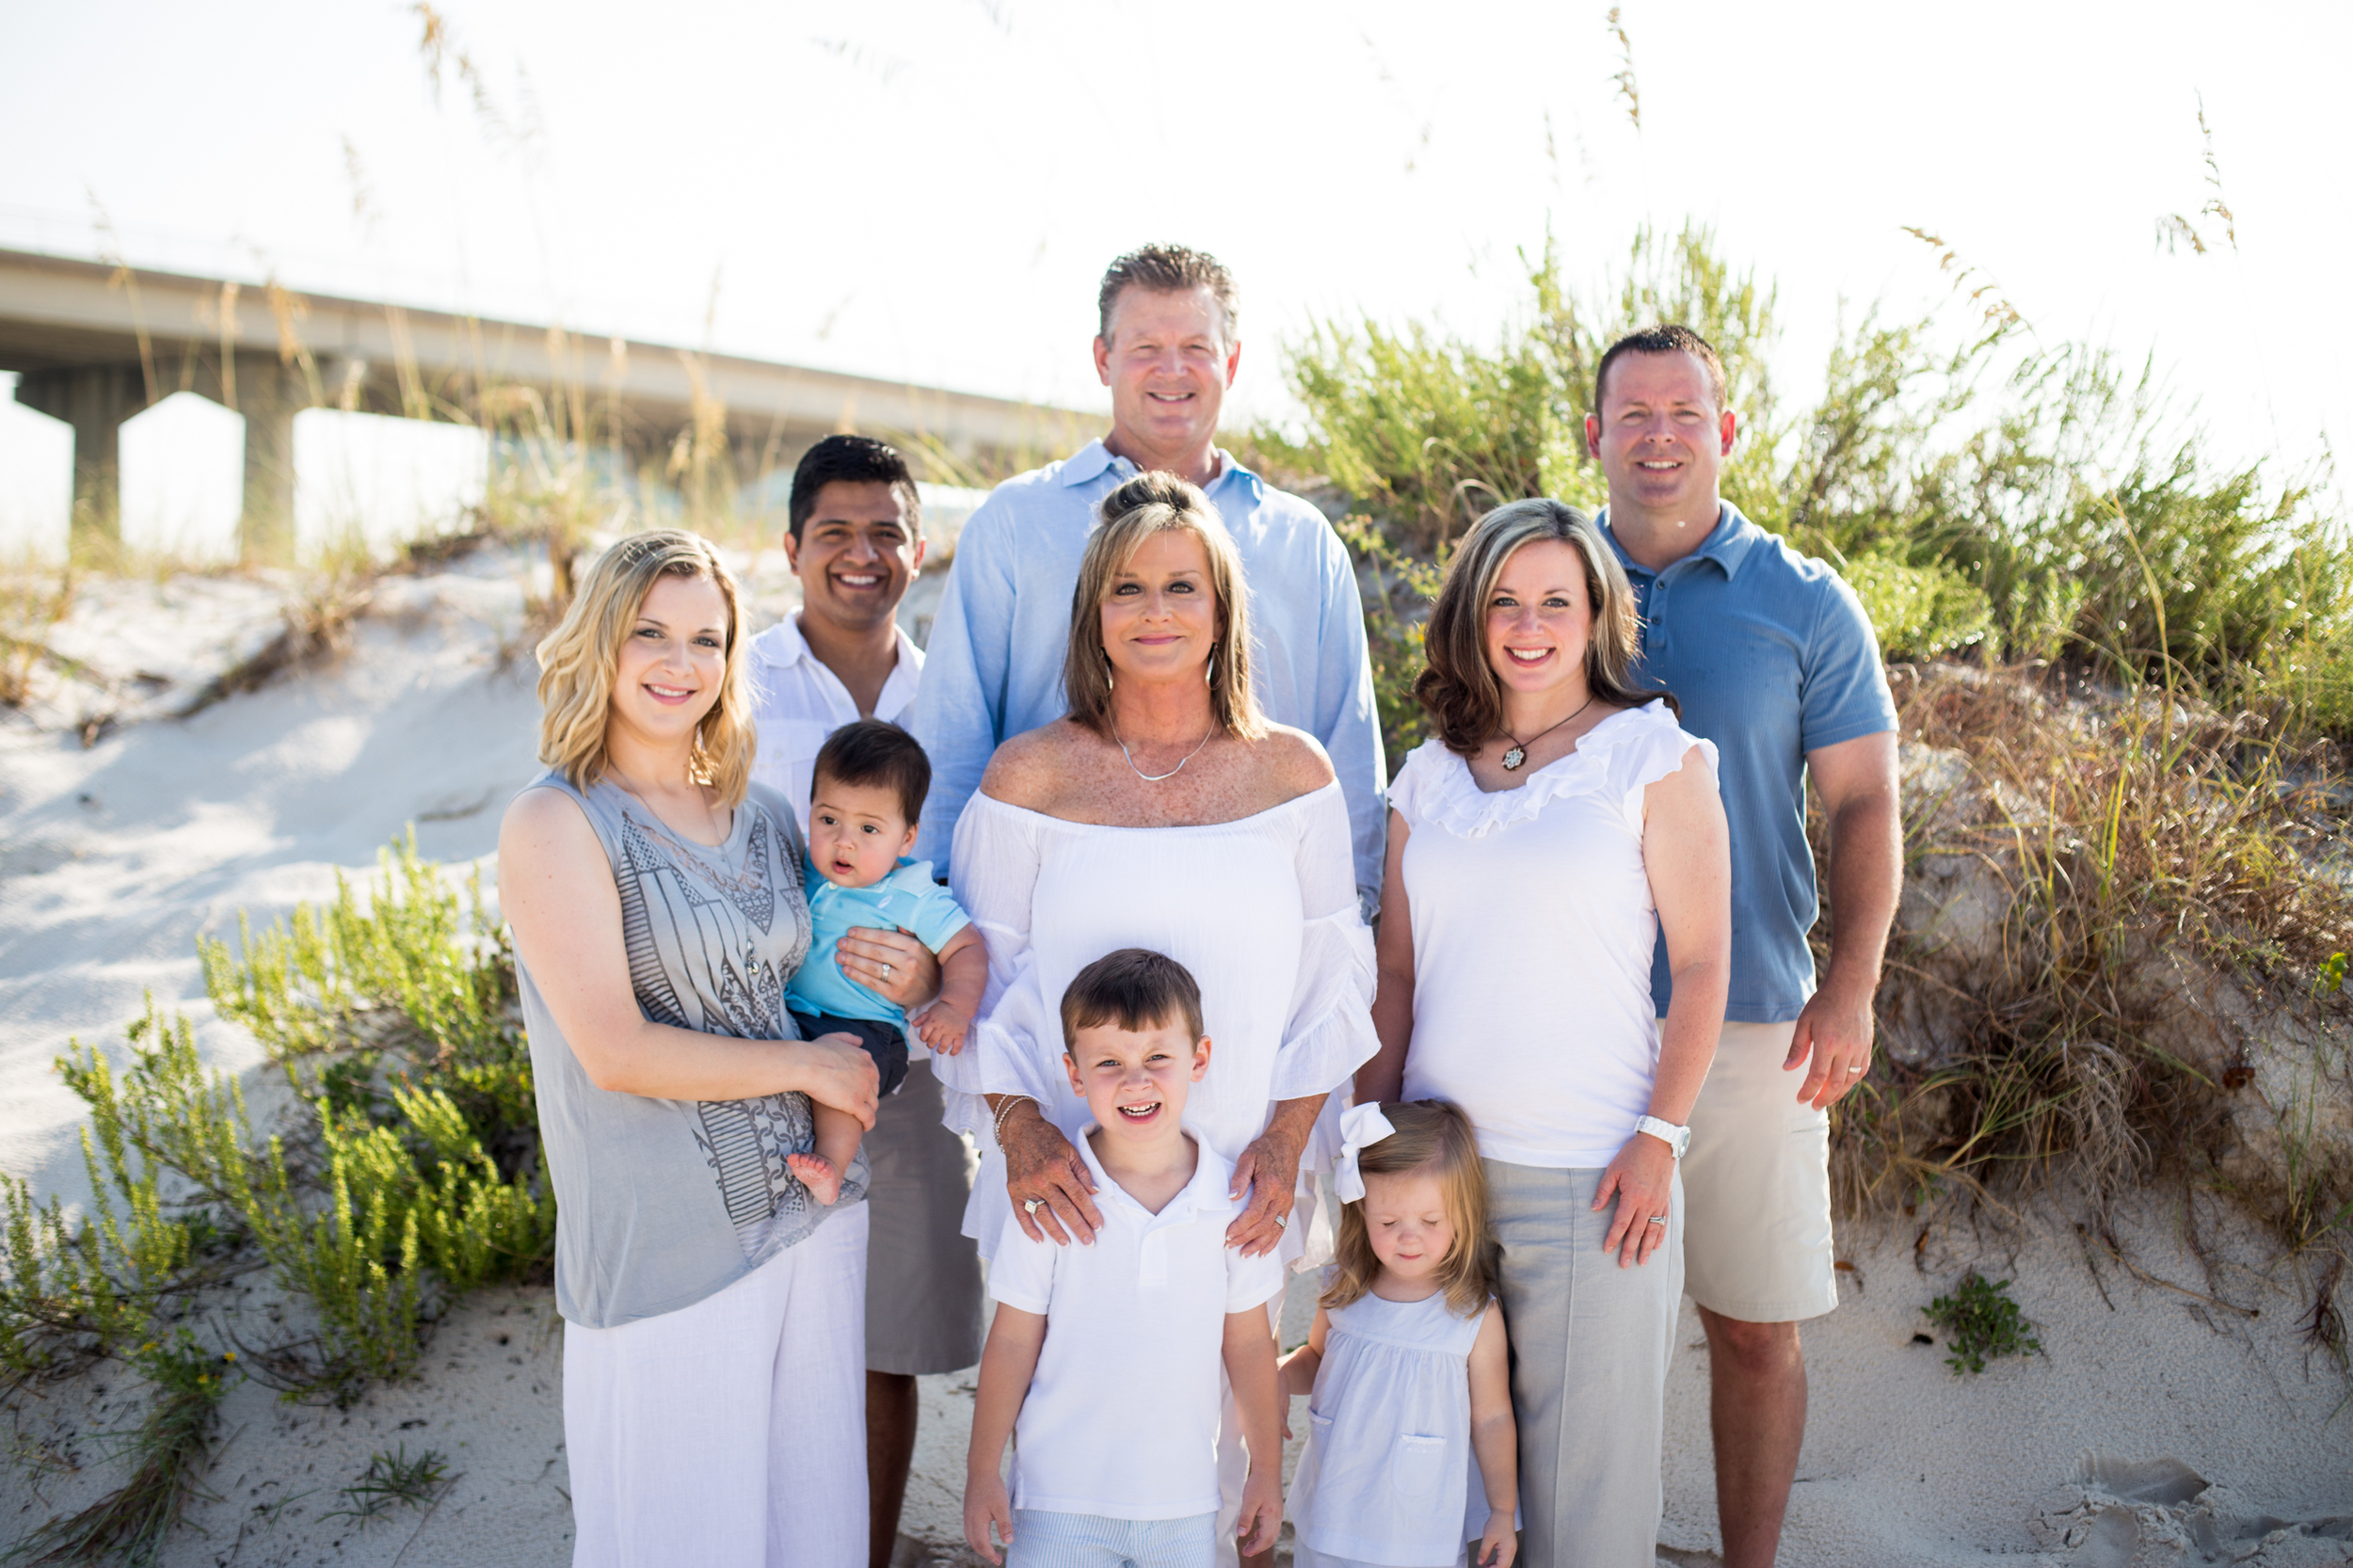 The Wallace family adds in pops of light & darker blues & grays to contrast the white & khaki. Beautiful family!!